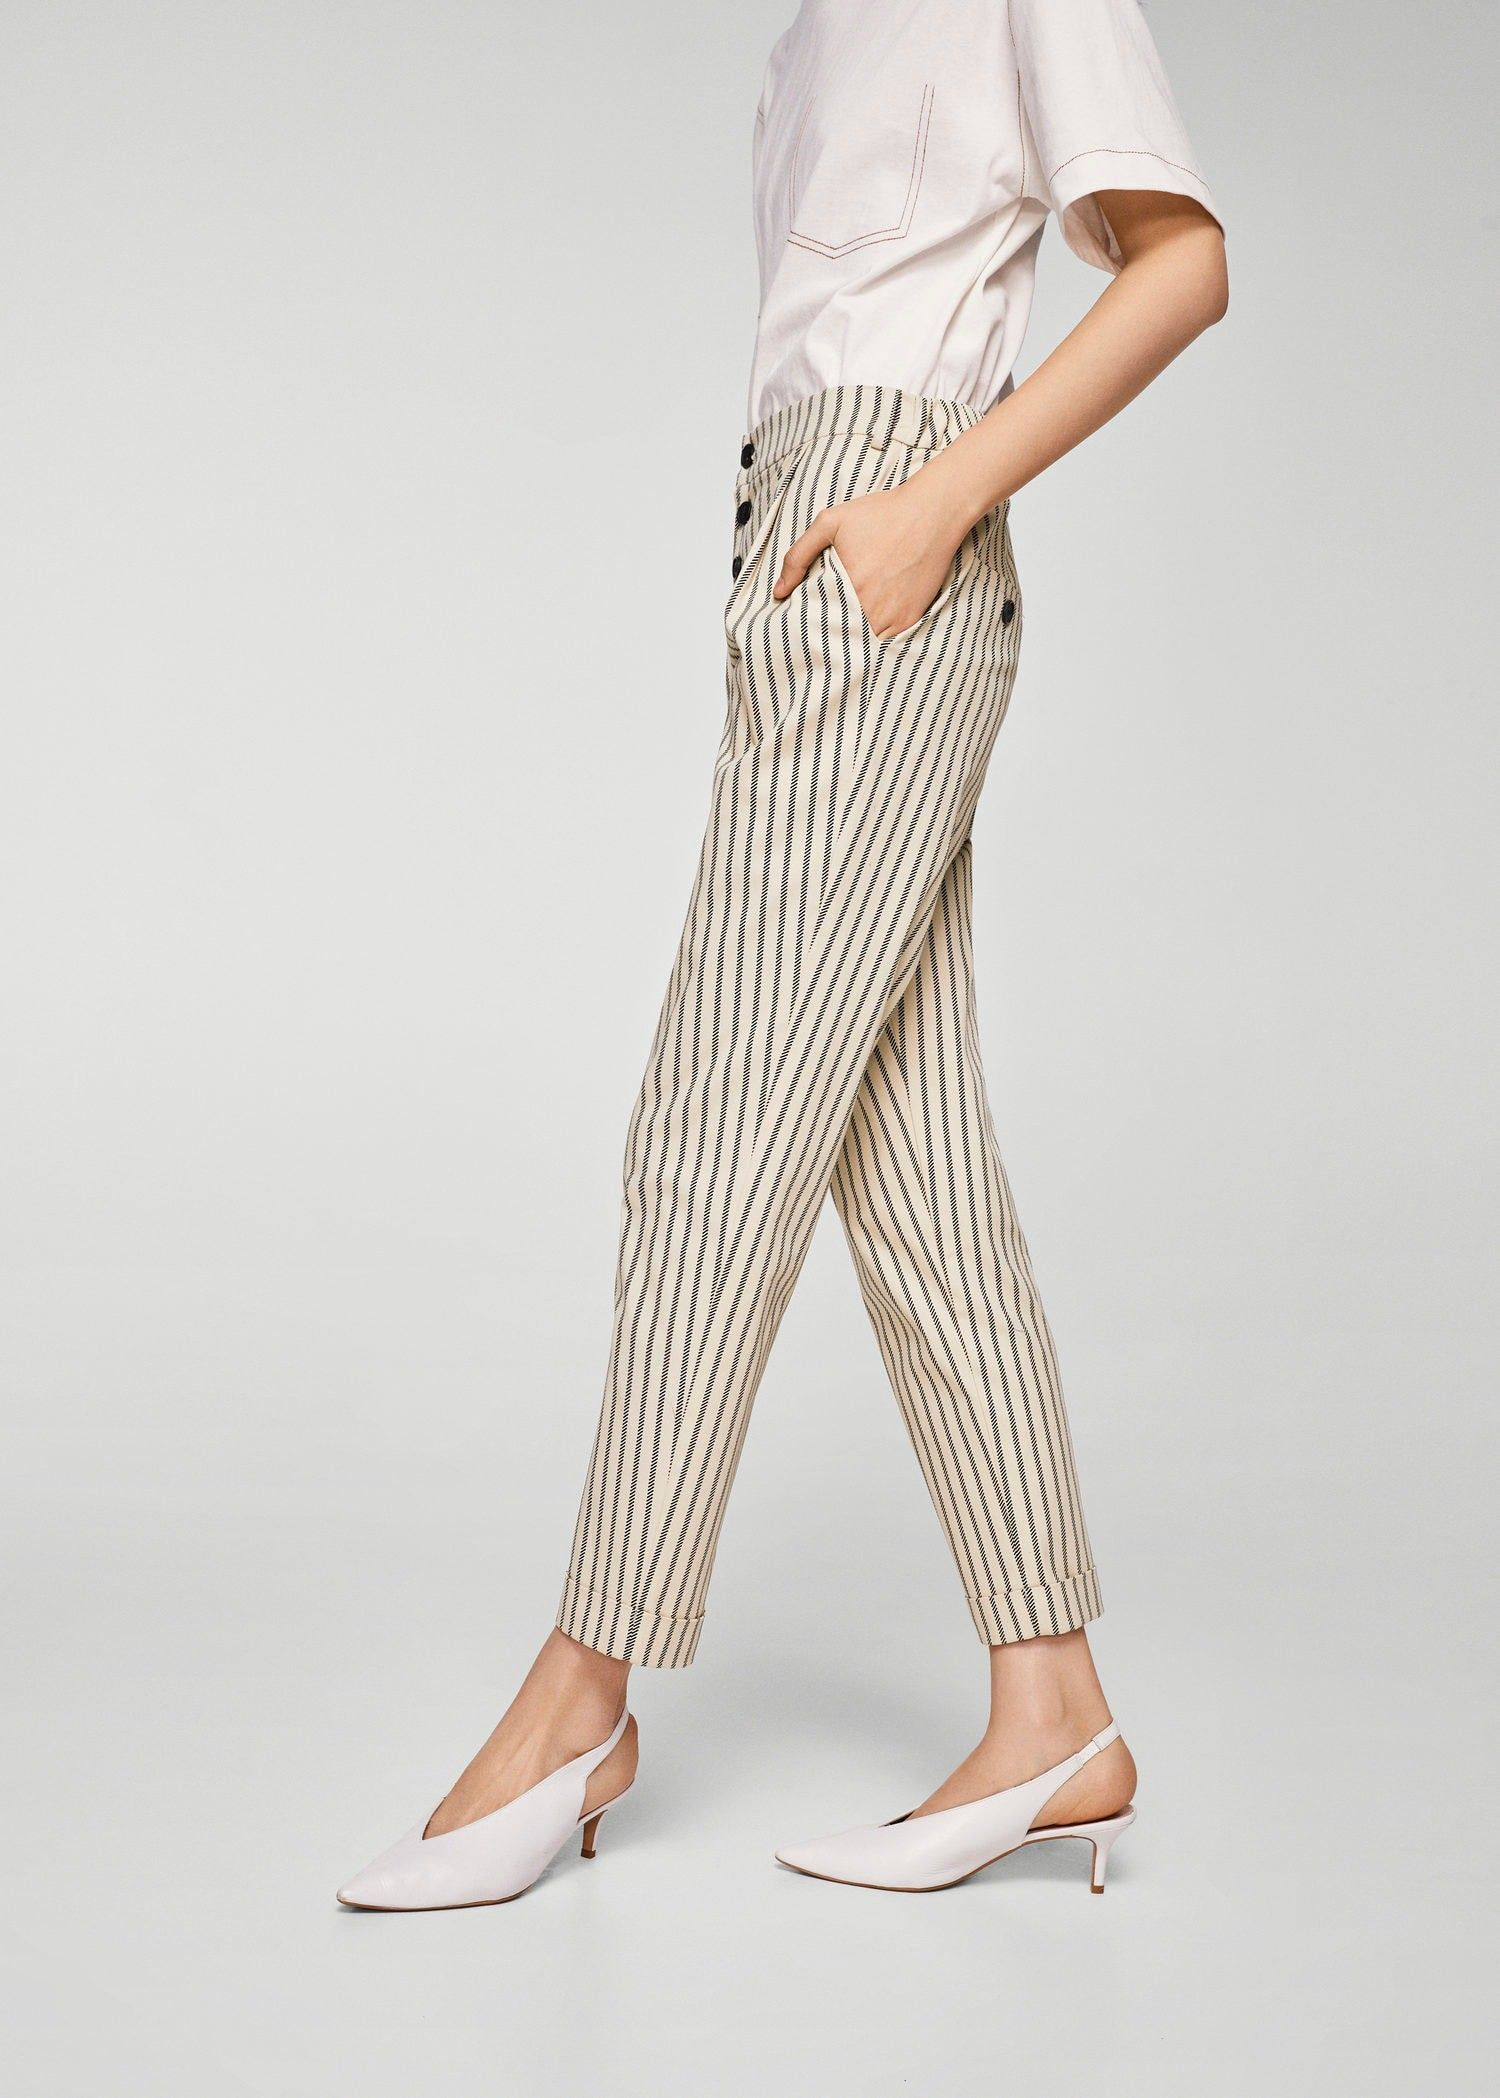 3198a42c61 Mango Straight Striped Trousers - Women